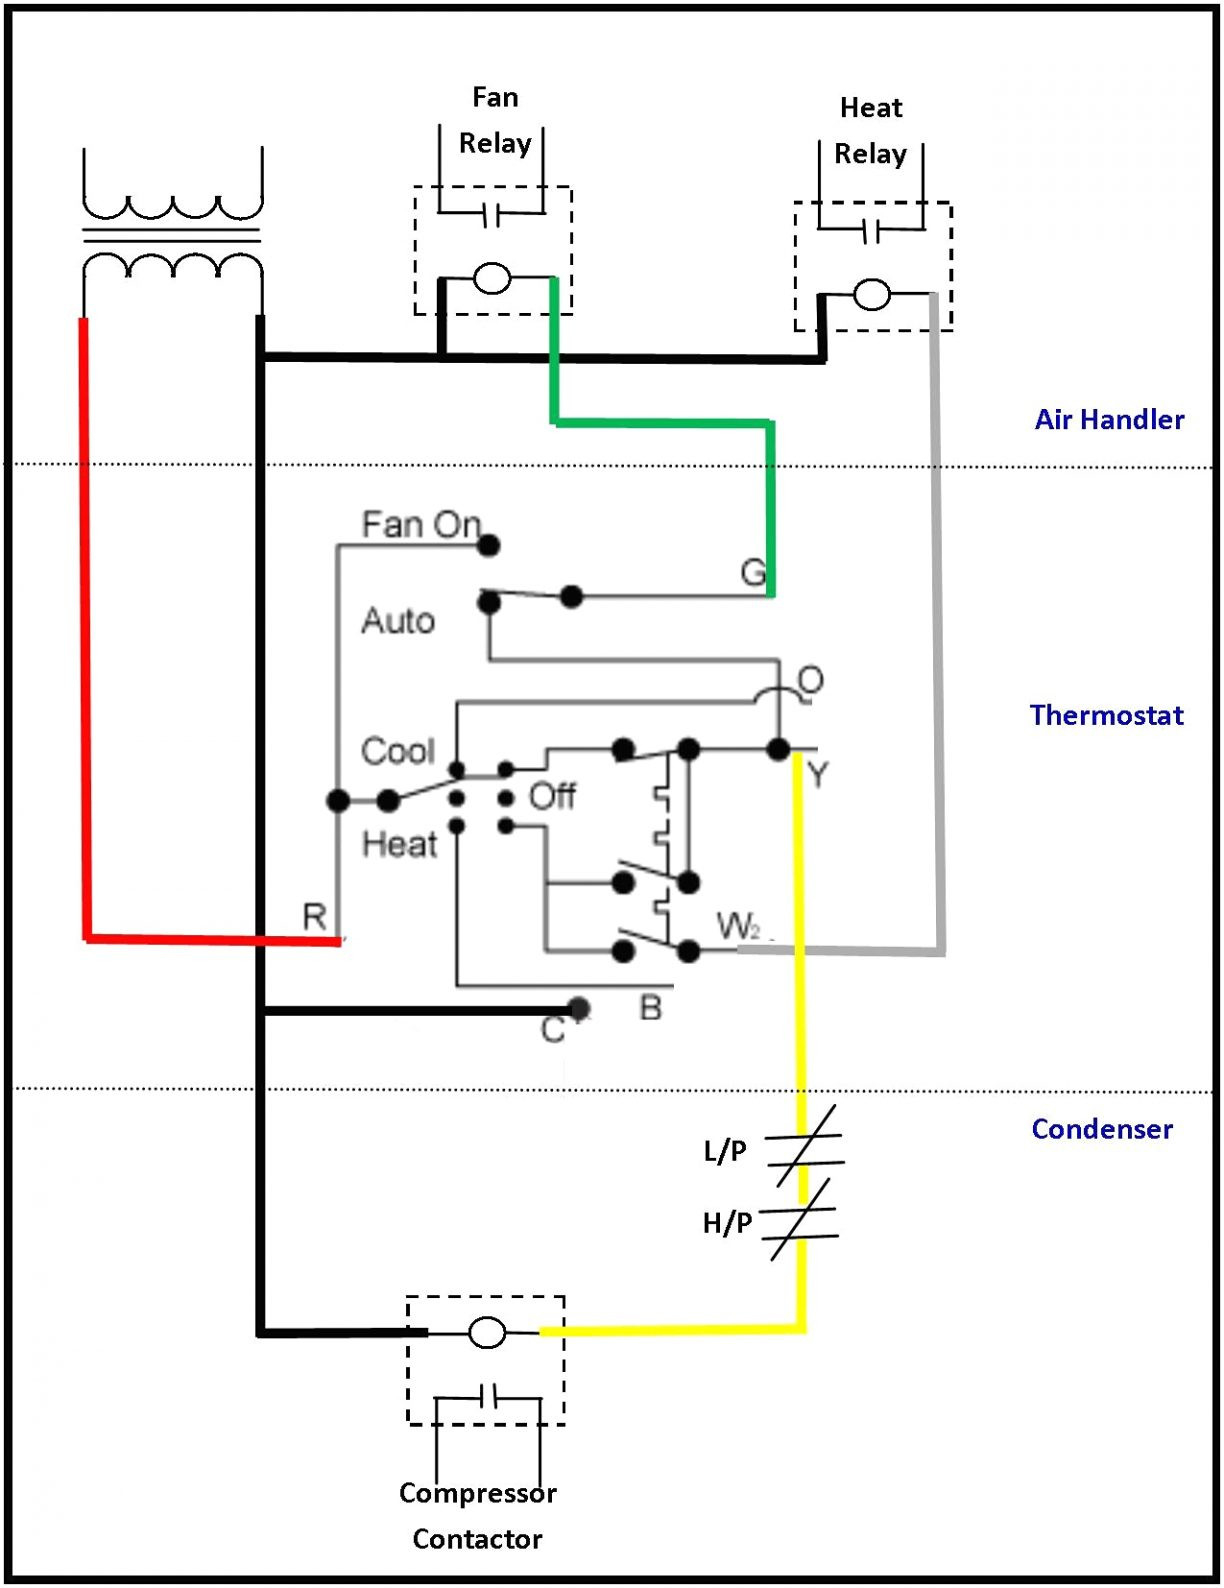 lennox wiring diagram Download-Wiring A Ac Thermostat Diagram Save Air Conditioner Thermostat Wiring Diagram Air Conditioner Thermostat 15-o